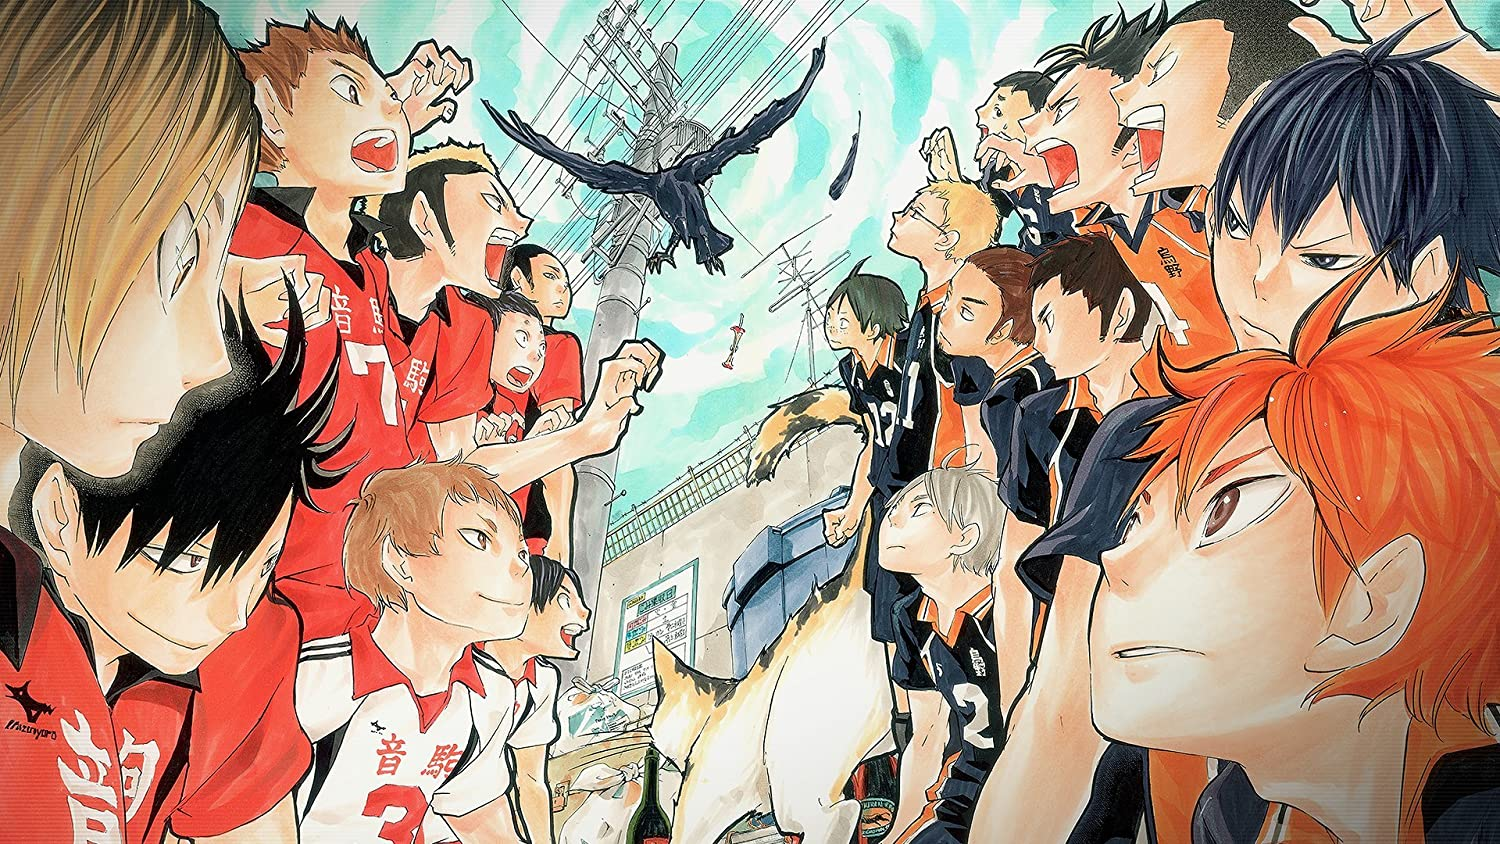 Haikyuu Season 4 Episode 18 Release Date and How to Watch Online